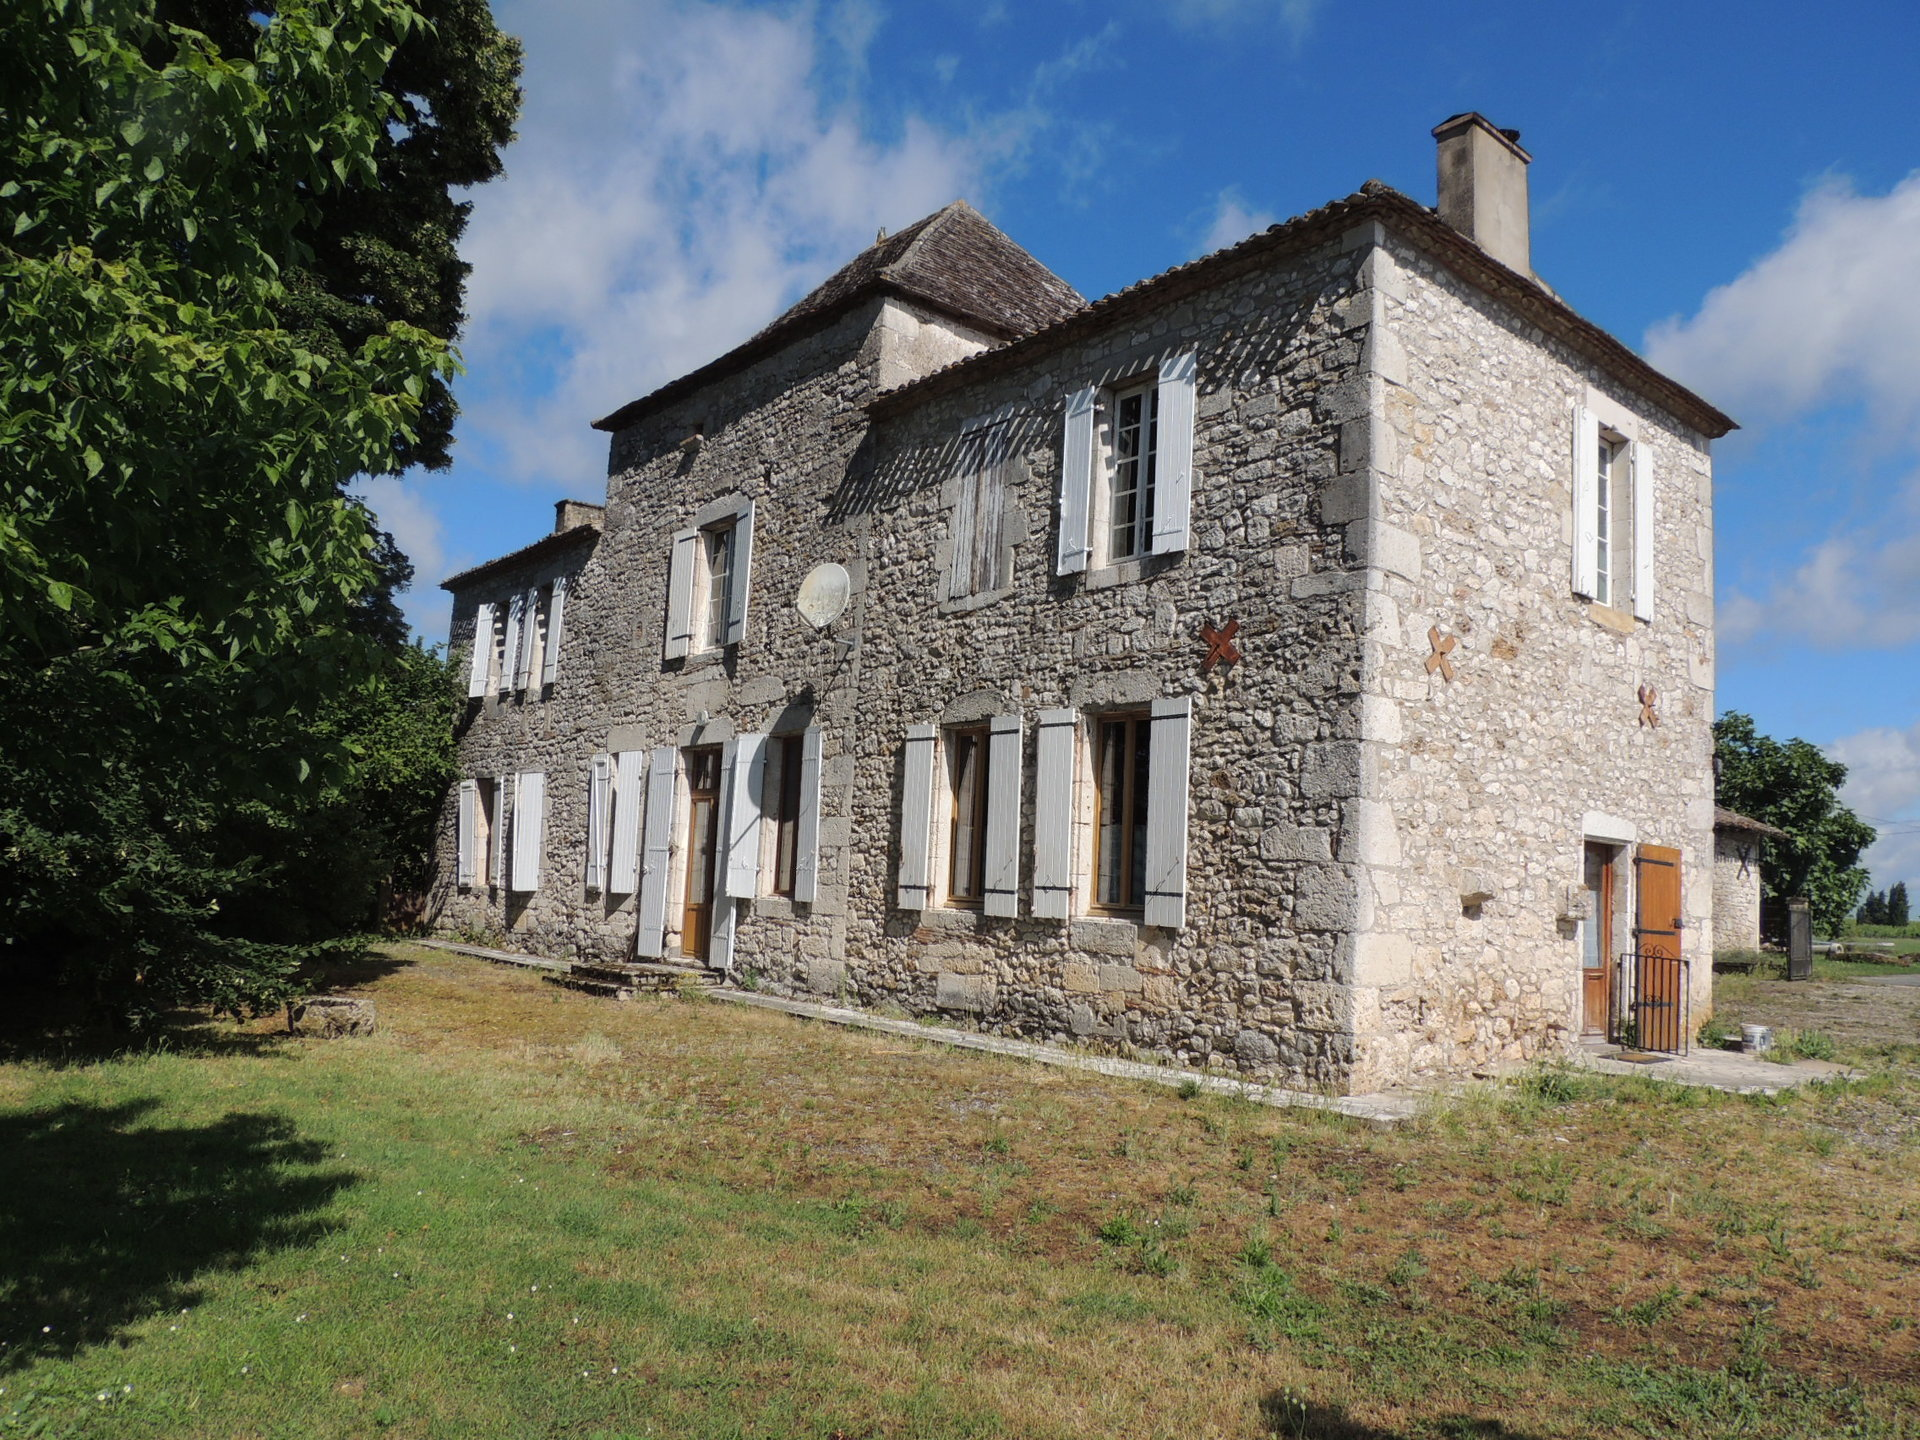 An imposing 18th C stone house near Bergerac